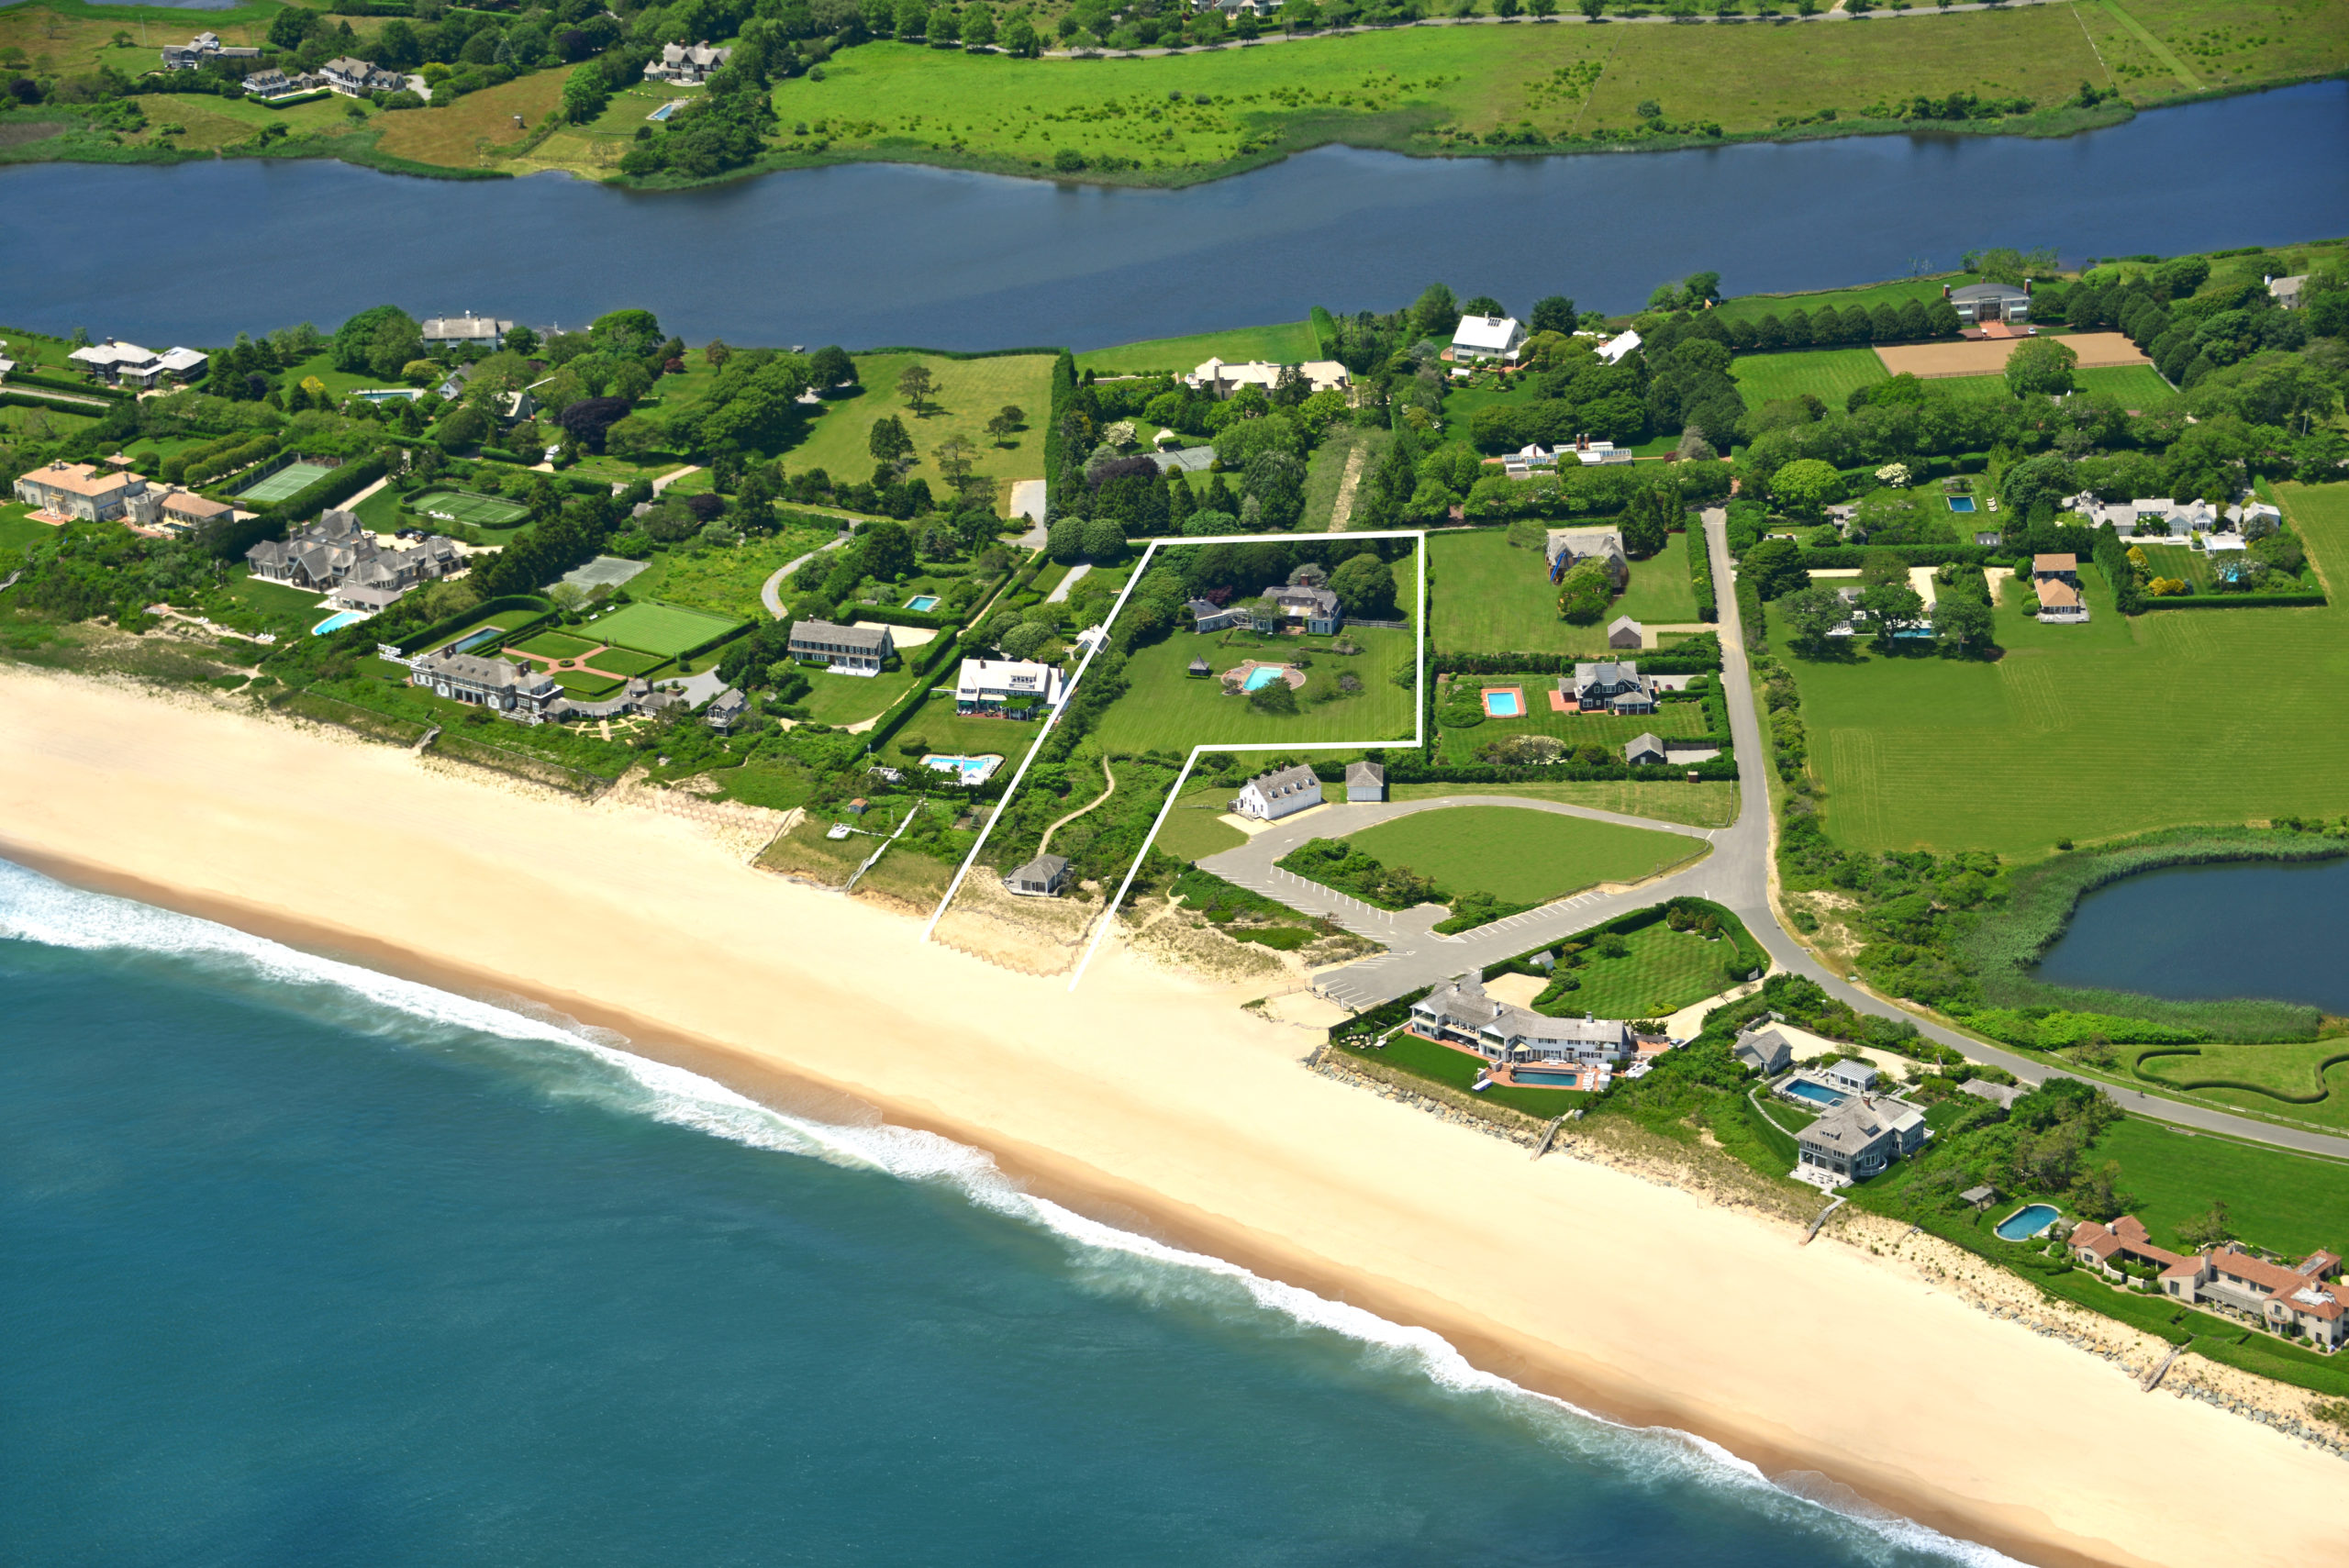 7 West End Road, East Hampton, the No. 9 Hamptons home sale of 2019.